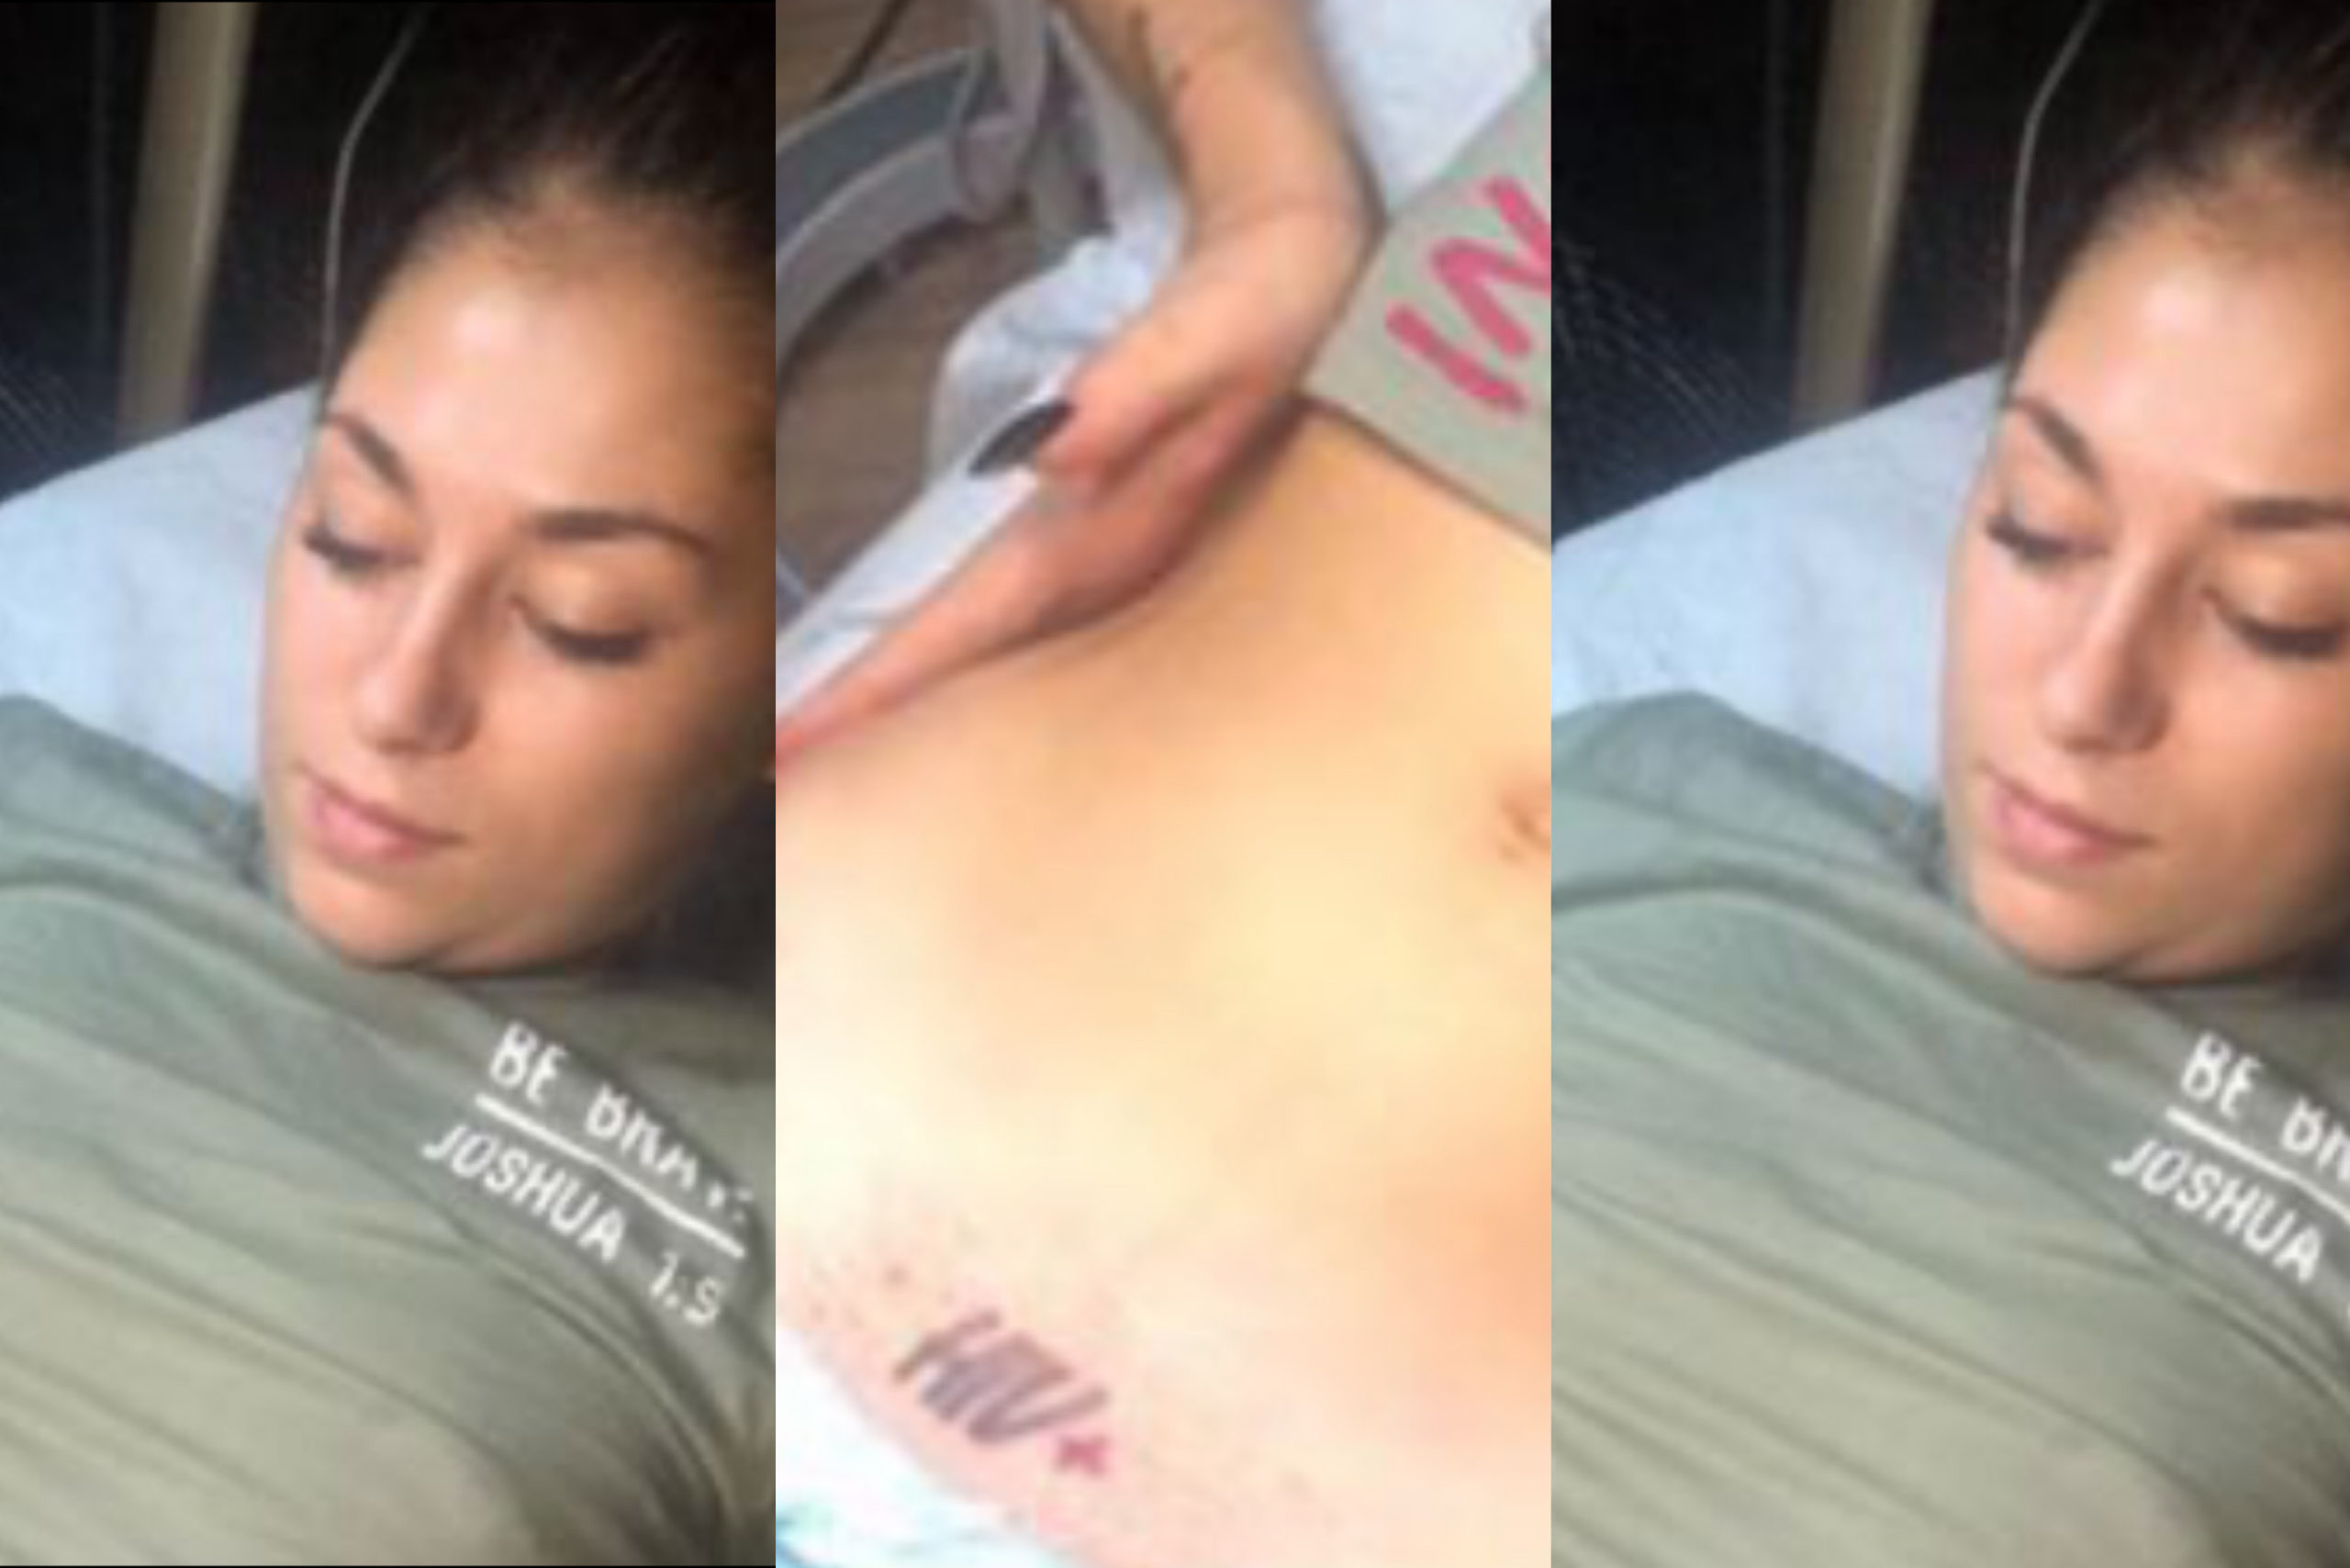 Woman Tattoos The Letters HIV On Her Thing After Realising She Now Has The Virus Apologises To Everyone Affected (PICS)